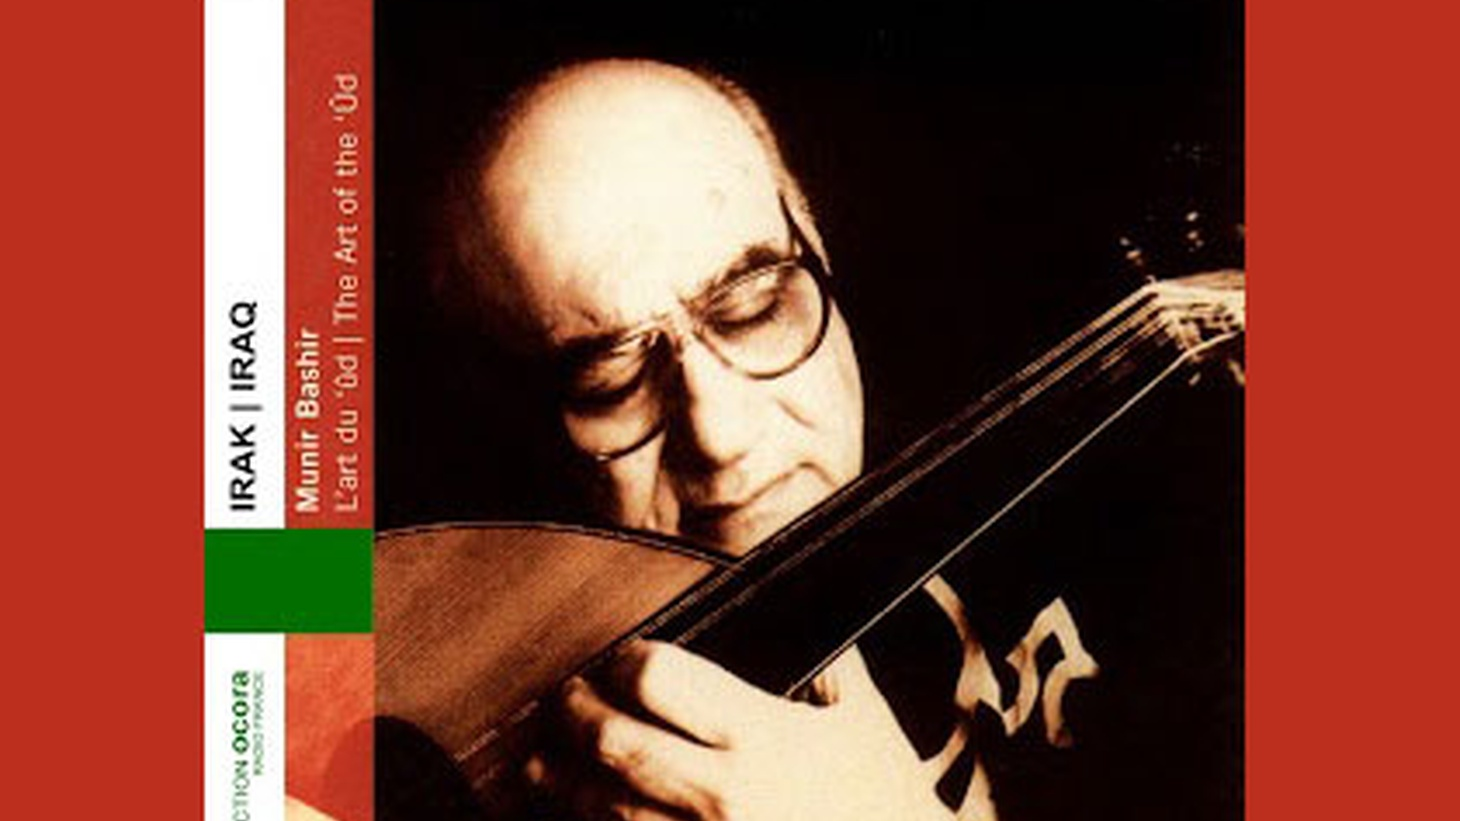 """This week's Rhythm Planet show compares the oud, the lute, and the guitar, and also features three songs by Latin jazz saxophonist Leandro """"Gato"""" Barbieri, who passed away recently."""